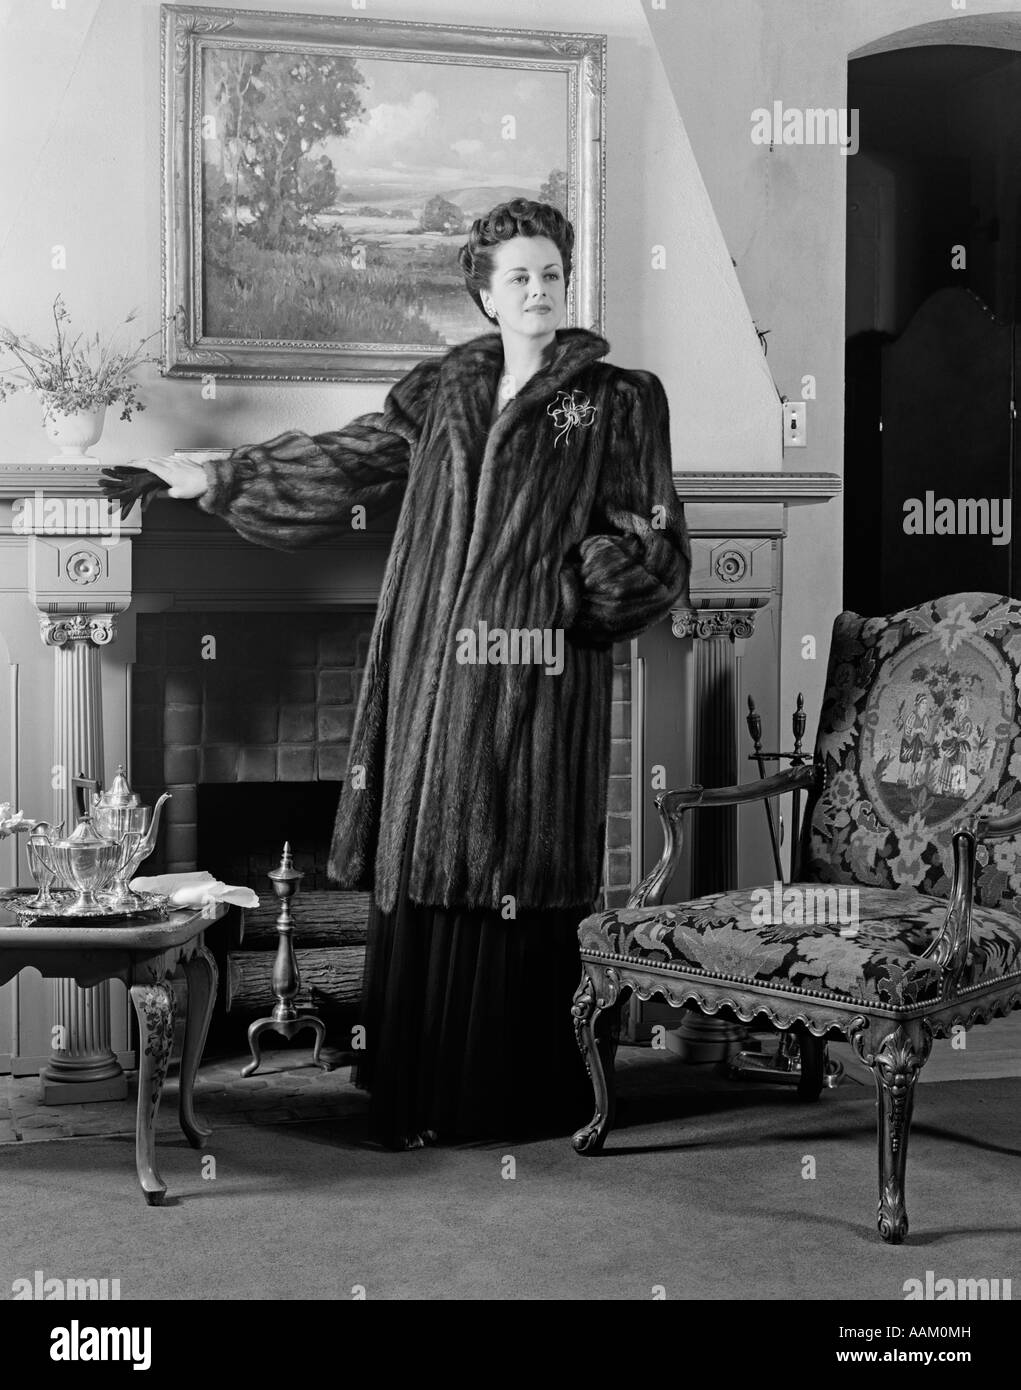 1940s WOMAN IN FORMAL LIVING ROOM STANDING IN FRONT OF FIREPLACE WEARING FULL-LENGTH FUR LOOKING AT CAMERA - Stock Image